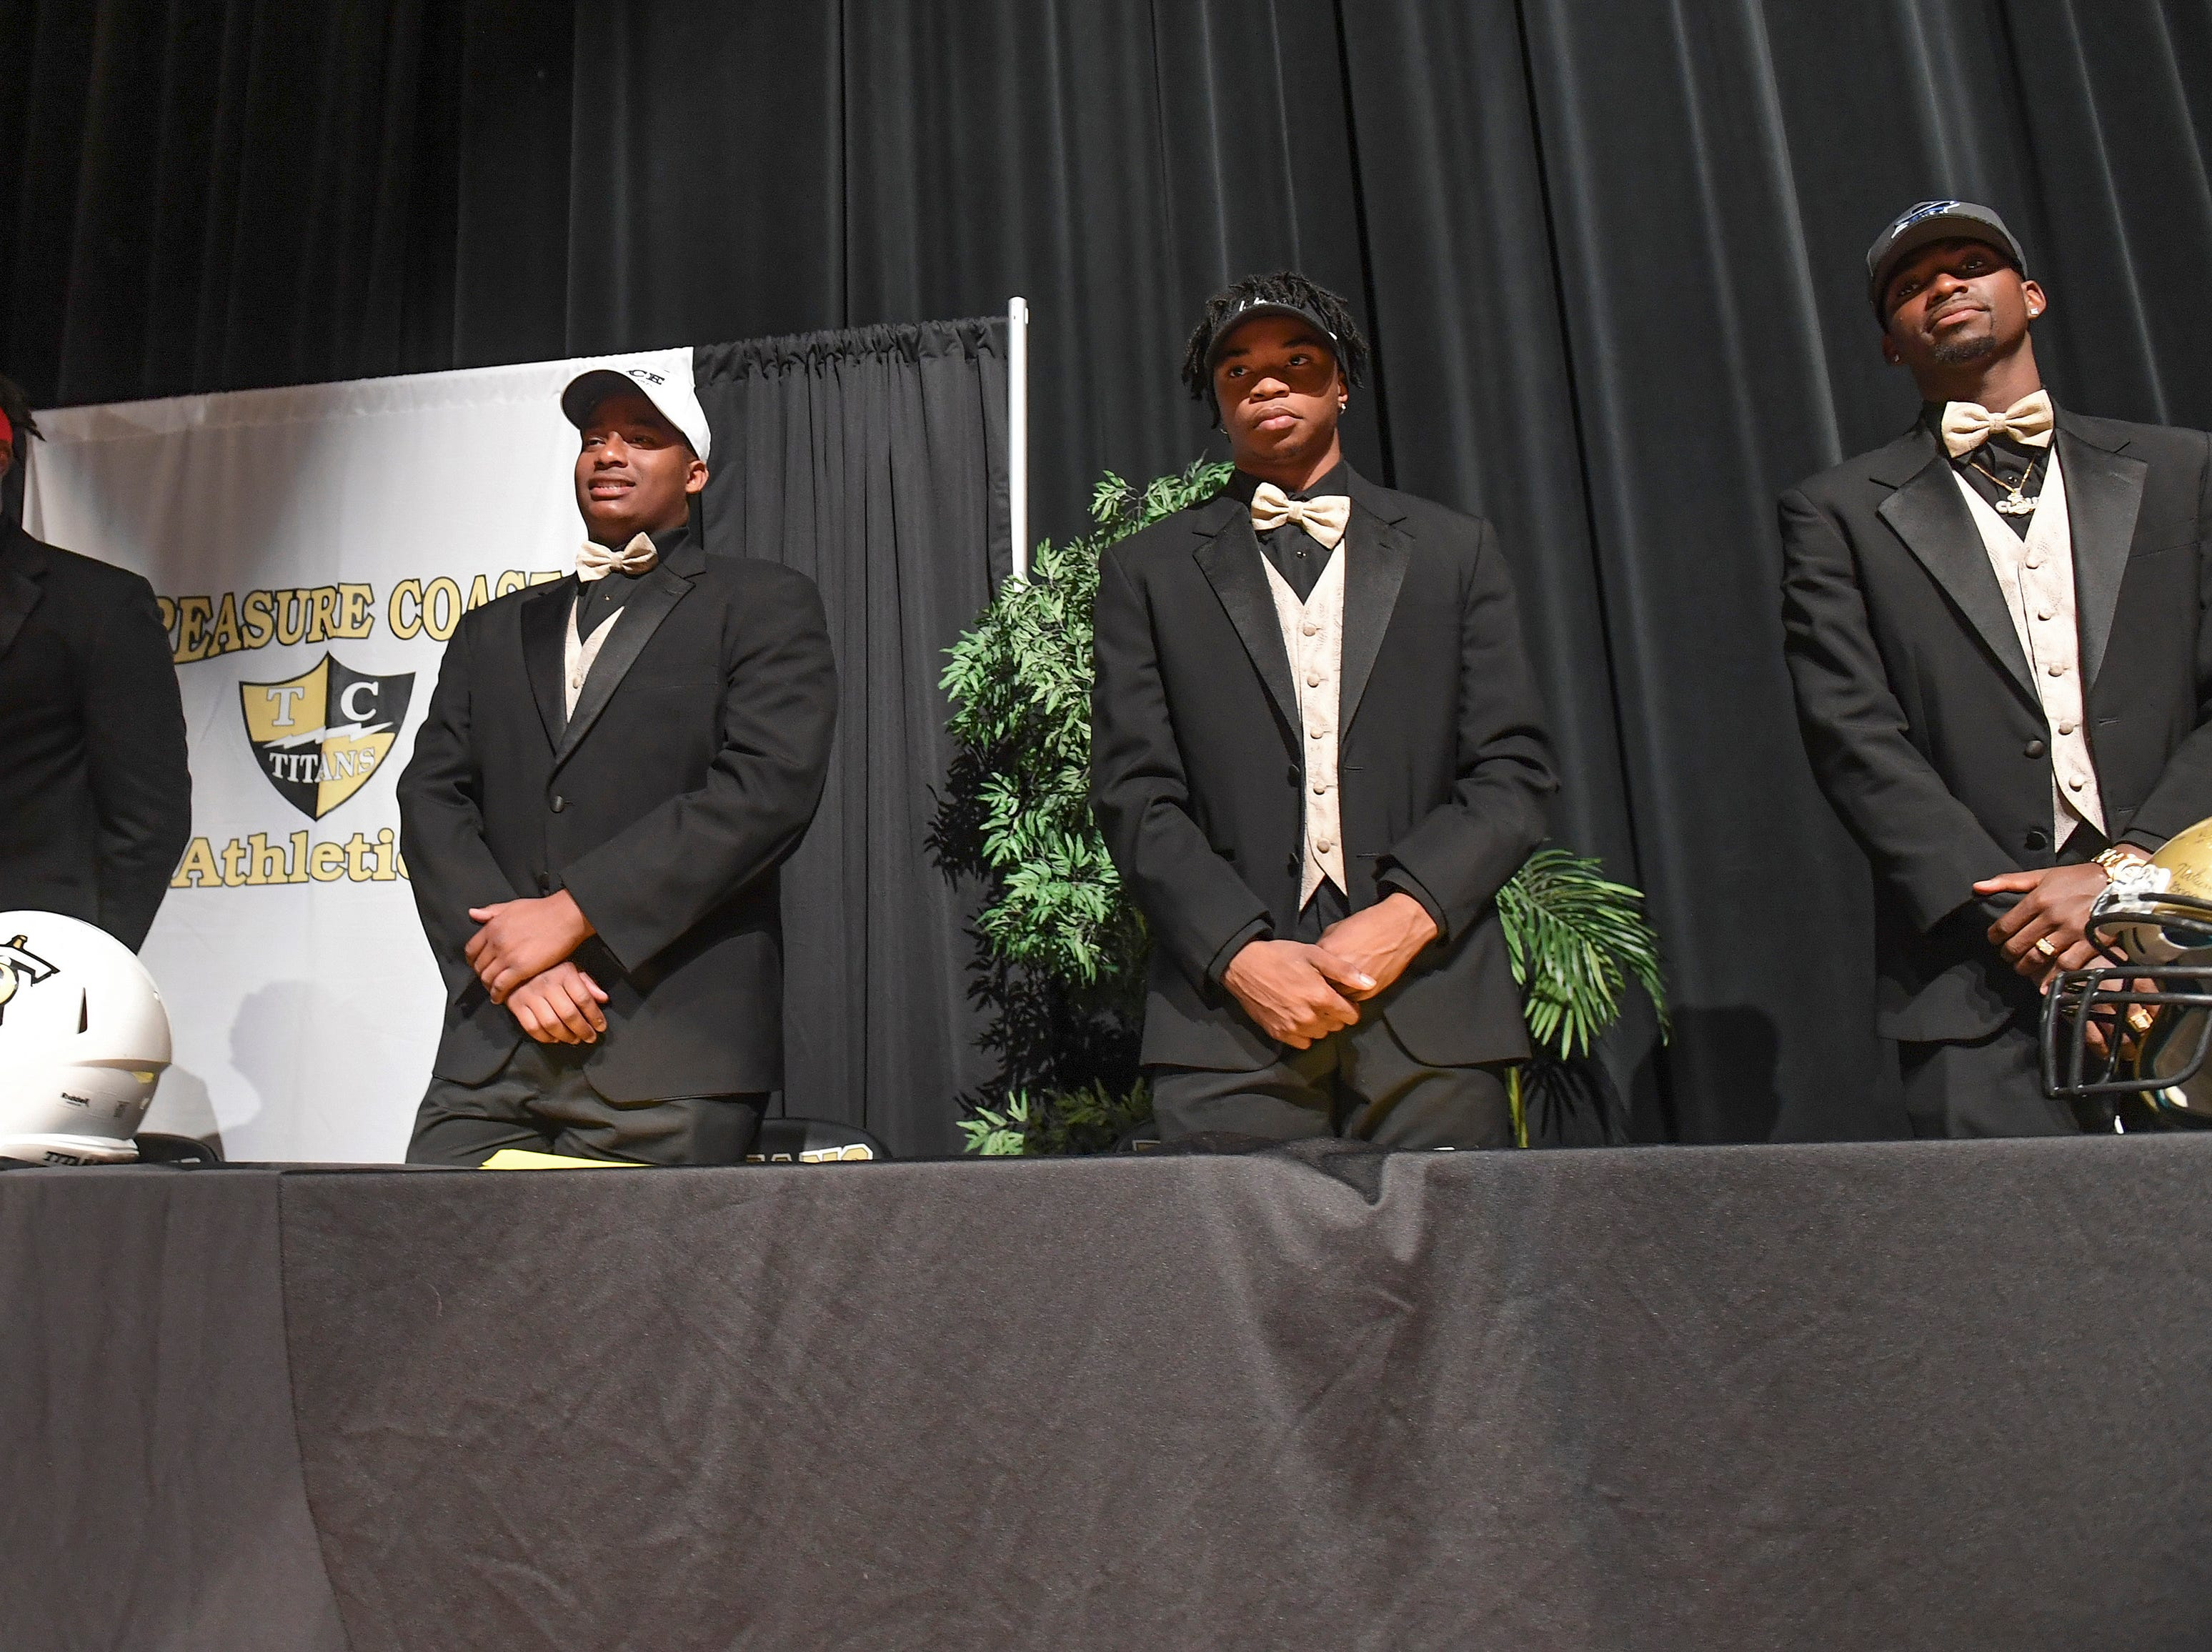 Treasure Coast High School football players (from left) Joel Rose, Jerry Johnson, Shamar Minnis, and Tyrec Thompson, are seen at the start of the school's National Signing Day celebration, where the athletes announce their college choices during the ceremony on Wednesday, Feb. 6, 2019, inside Treasure Coast High School's auditorium. Rose signed with Valdosta State, Johnson signed with Rice University, Minnis signed with Bethune-Cookman University, Thompson signed with Iowa Western, and (not pictured) Joshua Nunes signed with Central State University in Ohio, Brendon Joseph signed with Ave Maria University, and Anthony Martens signed with University of West Florida to play baseball.